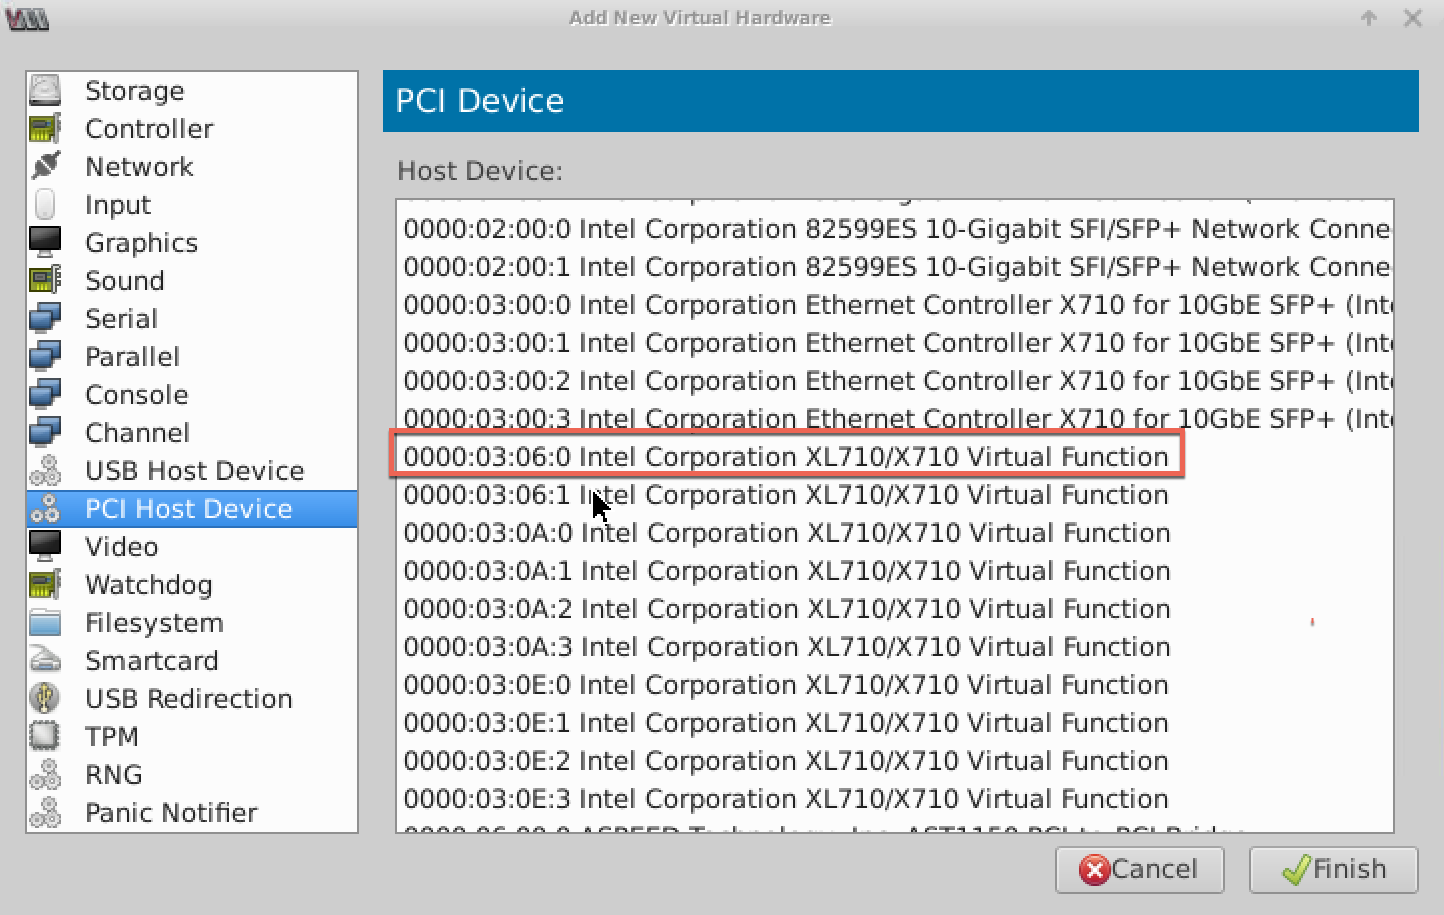 Configure a Citrix ADC VPX instance to use SR-IOV network interfaces